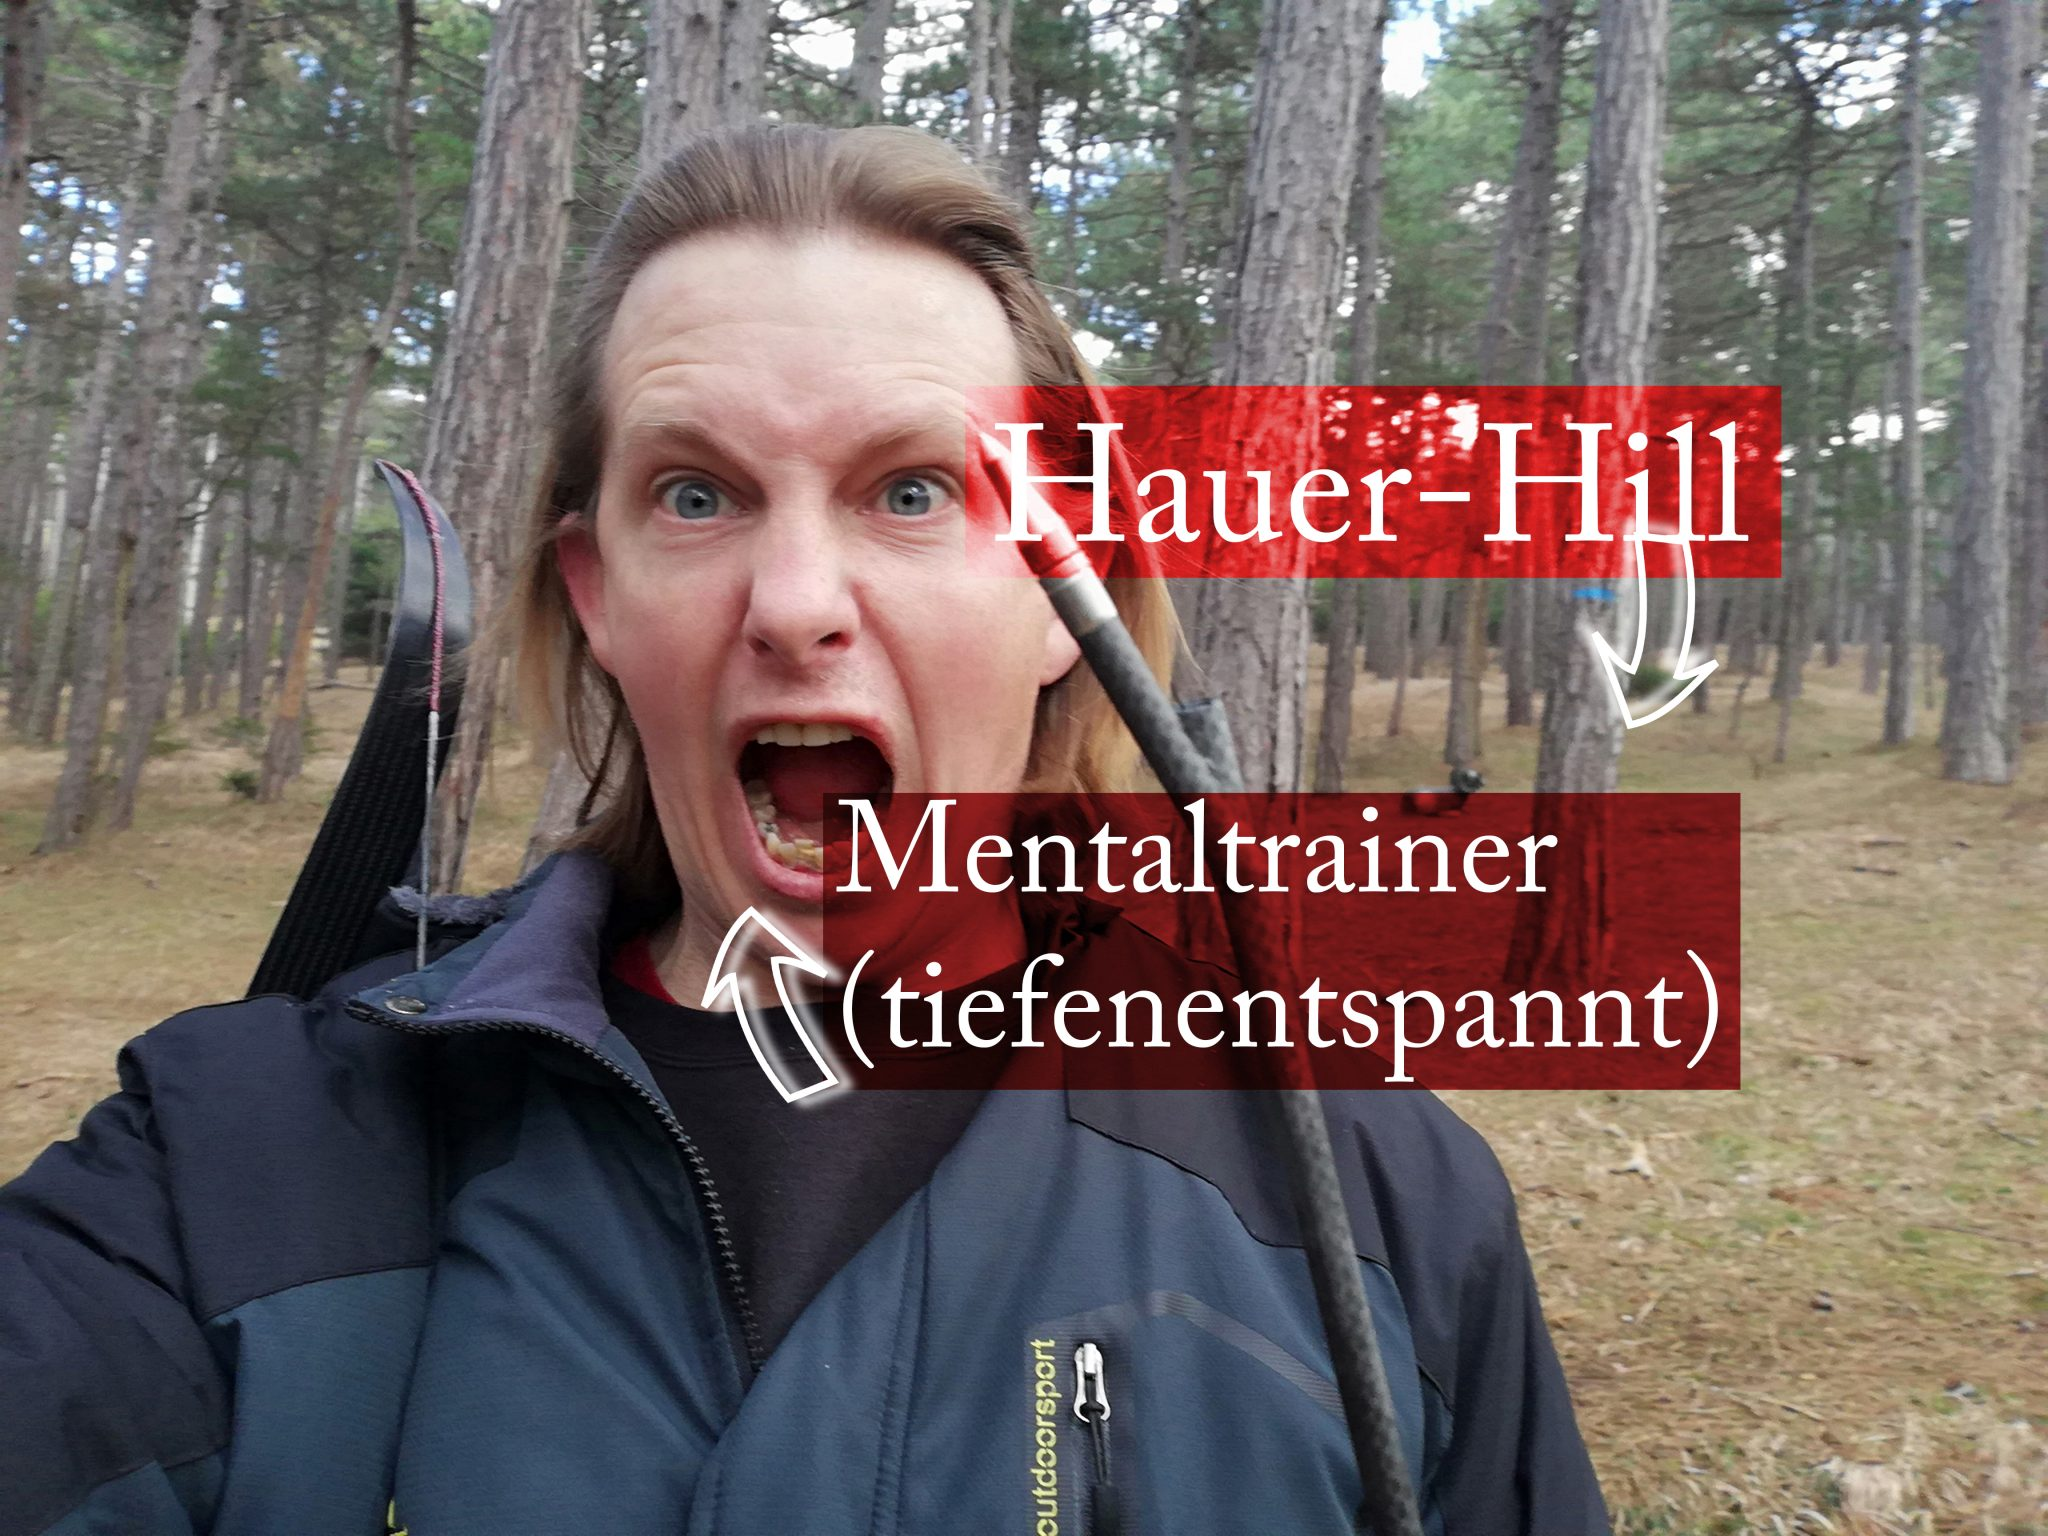 Mentaltrainer am Hauer HIll